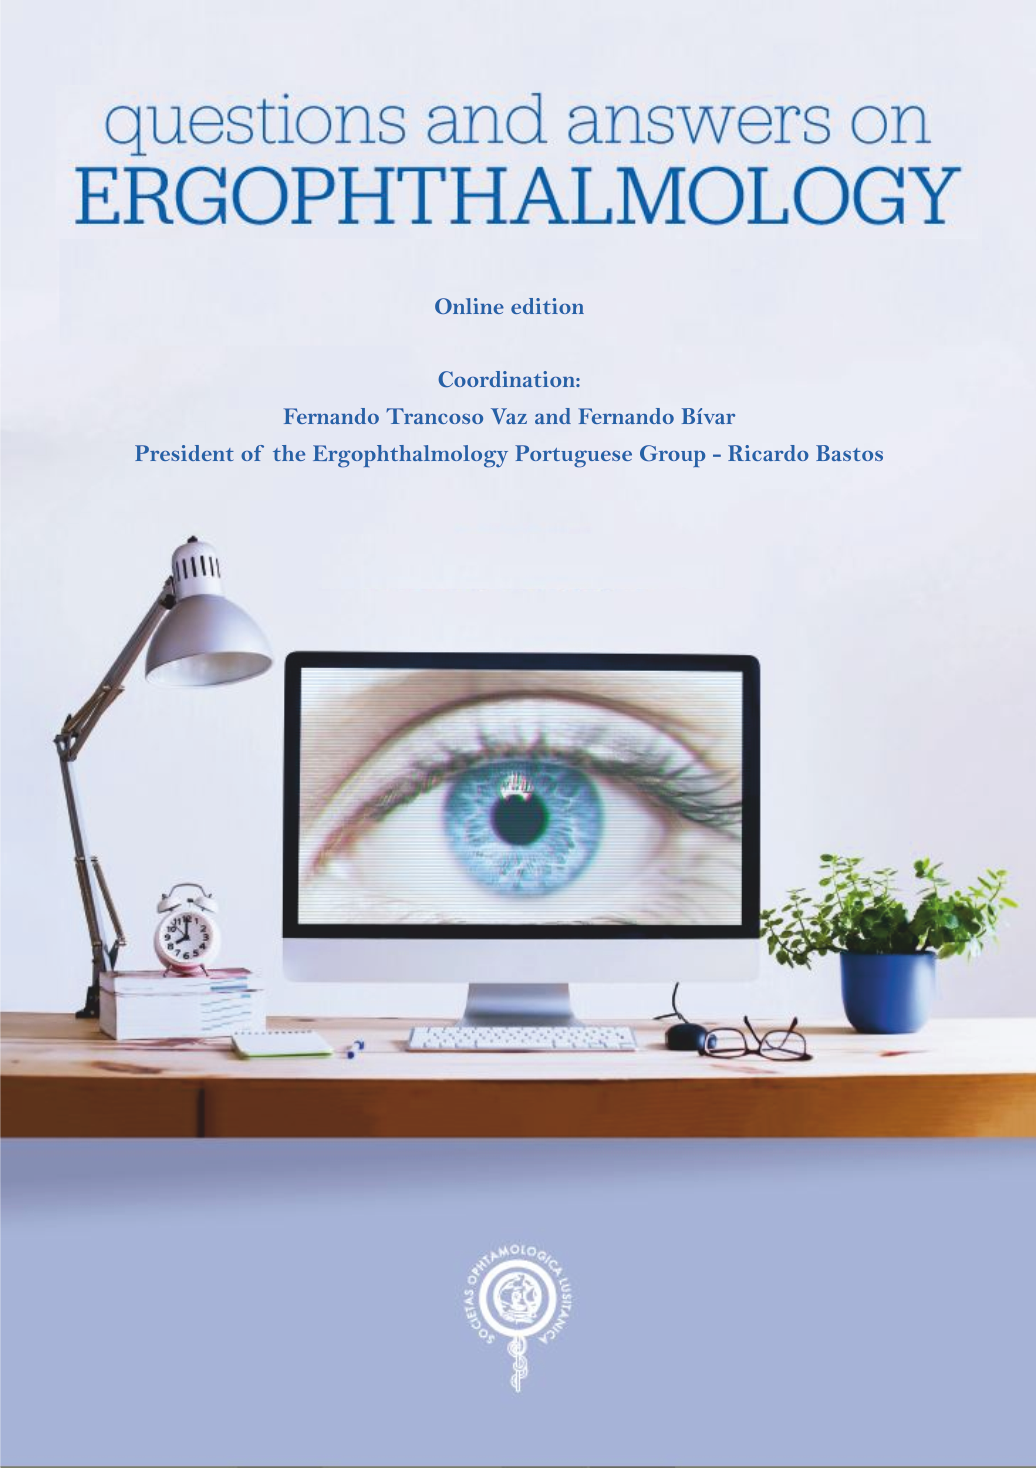 Questions and answers in Ergophthalmology. Book cover